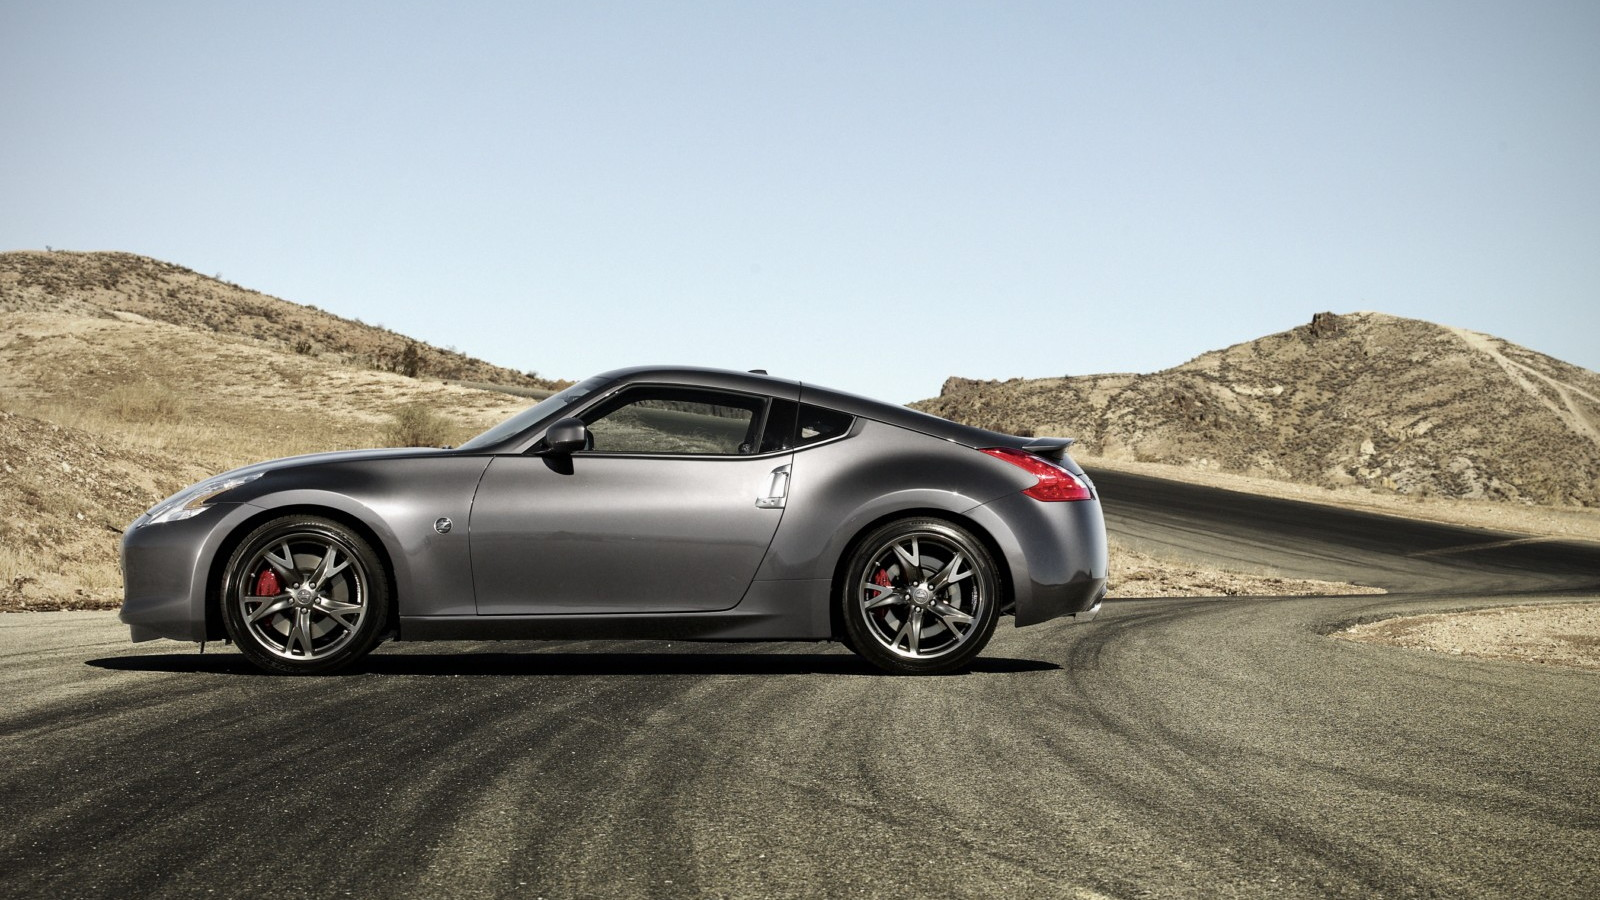 2010 Nissan 370Z 40th Anniversary edition